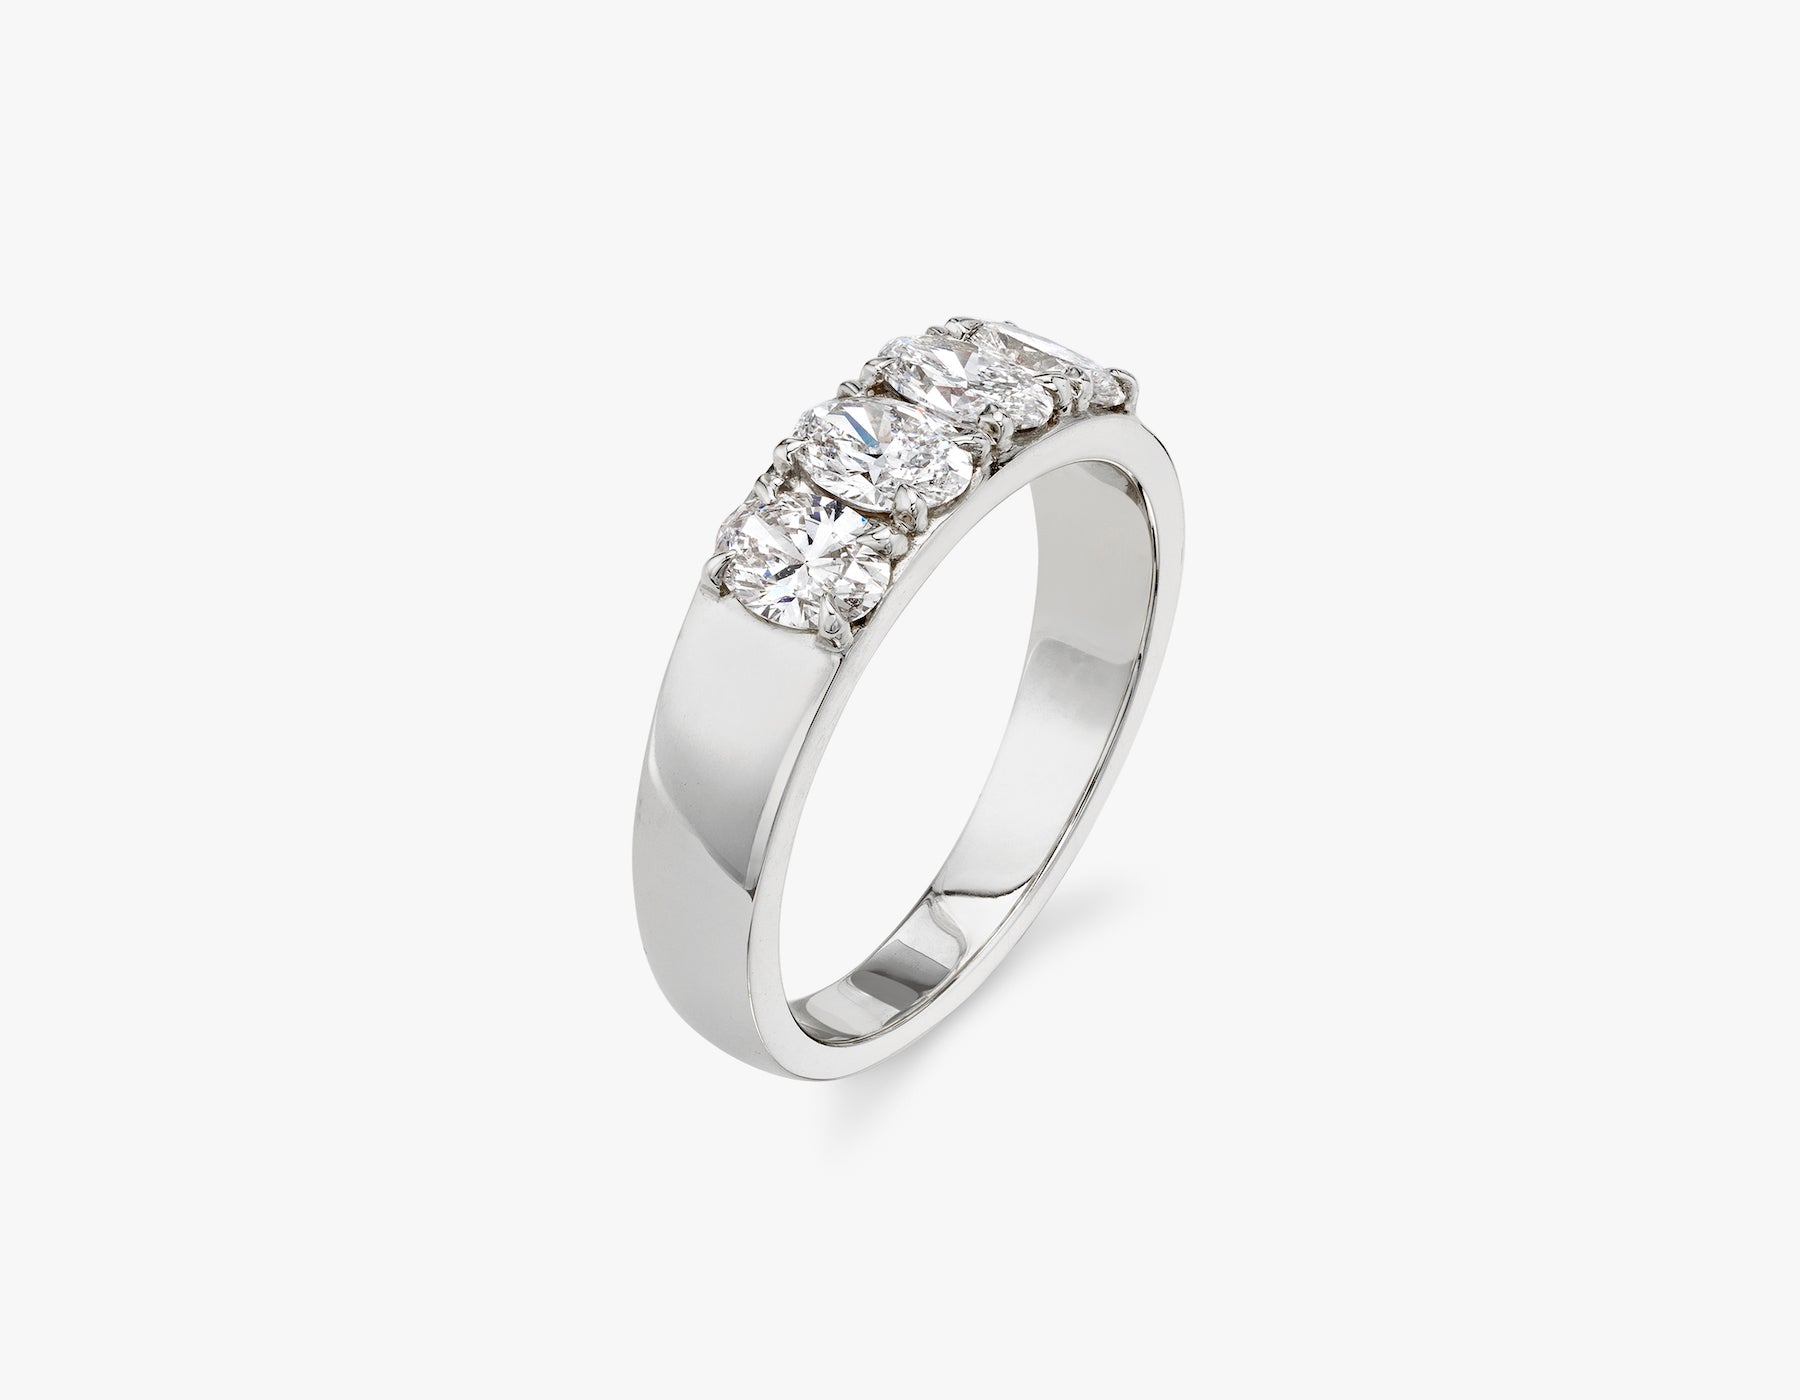 Vrai classic elegant Oval Diamond Tetrad Band .25ct Oval Diamond Ring, 14K White Gold